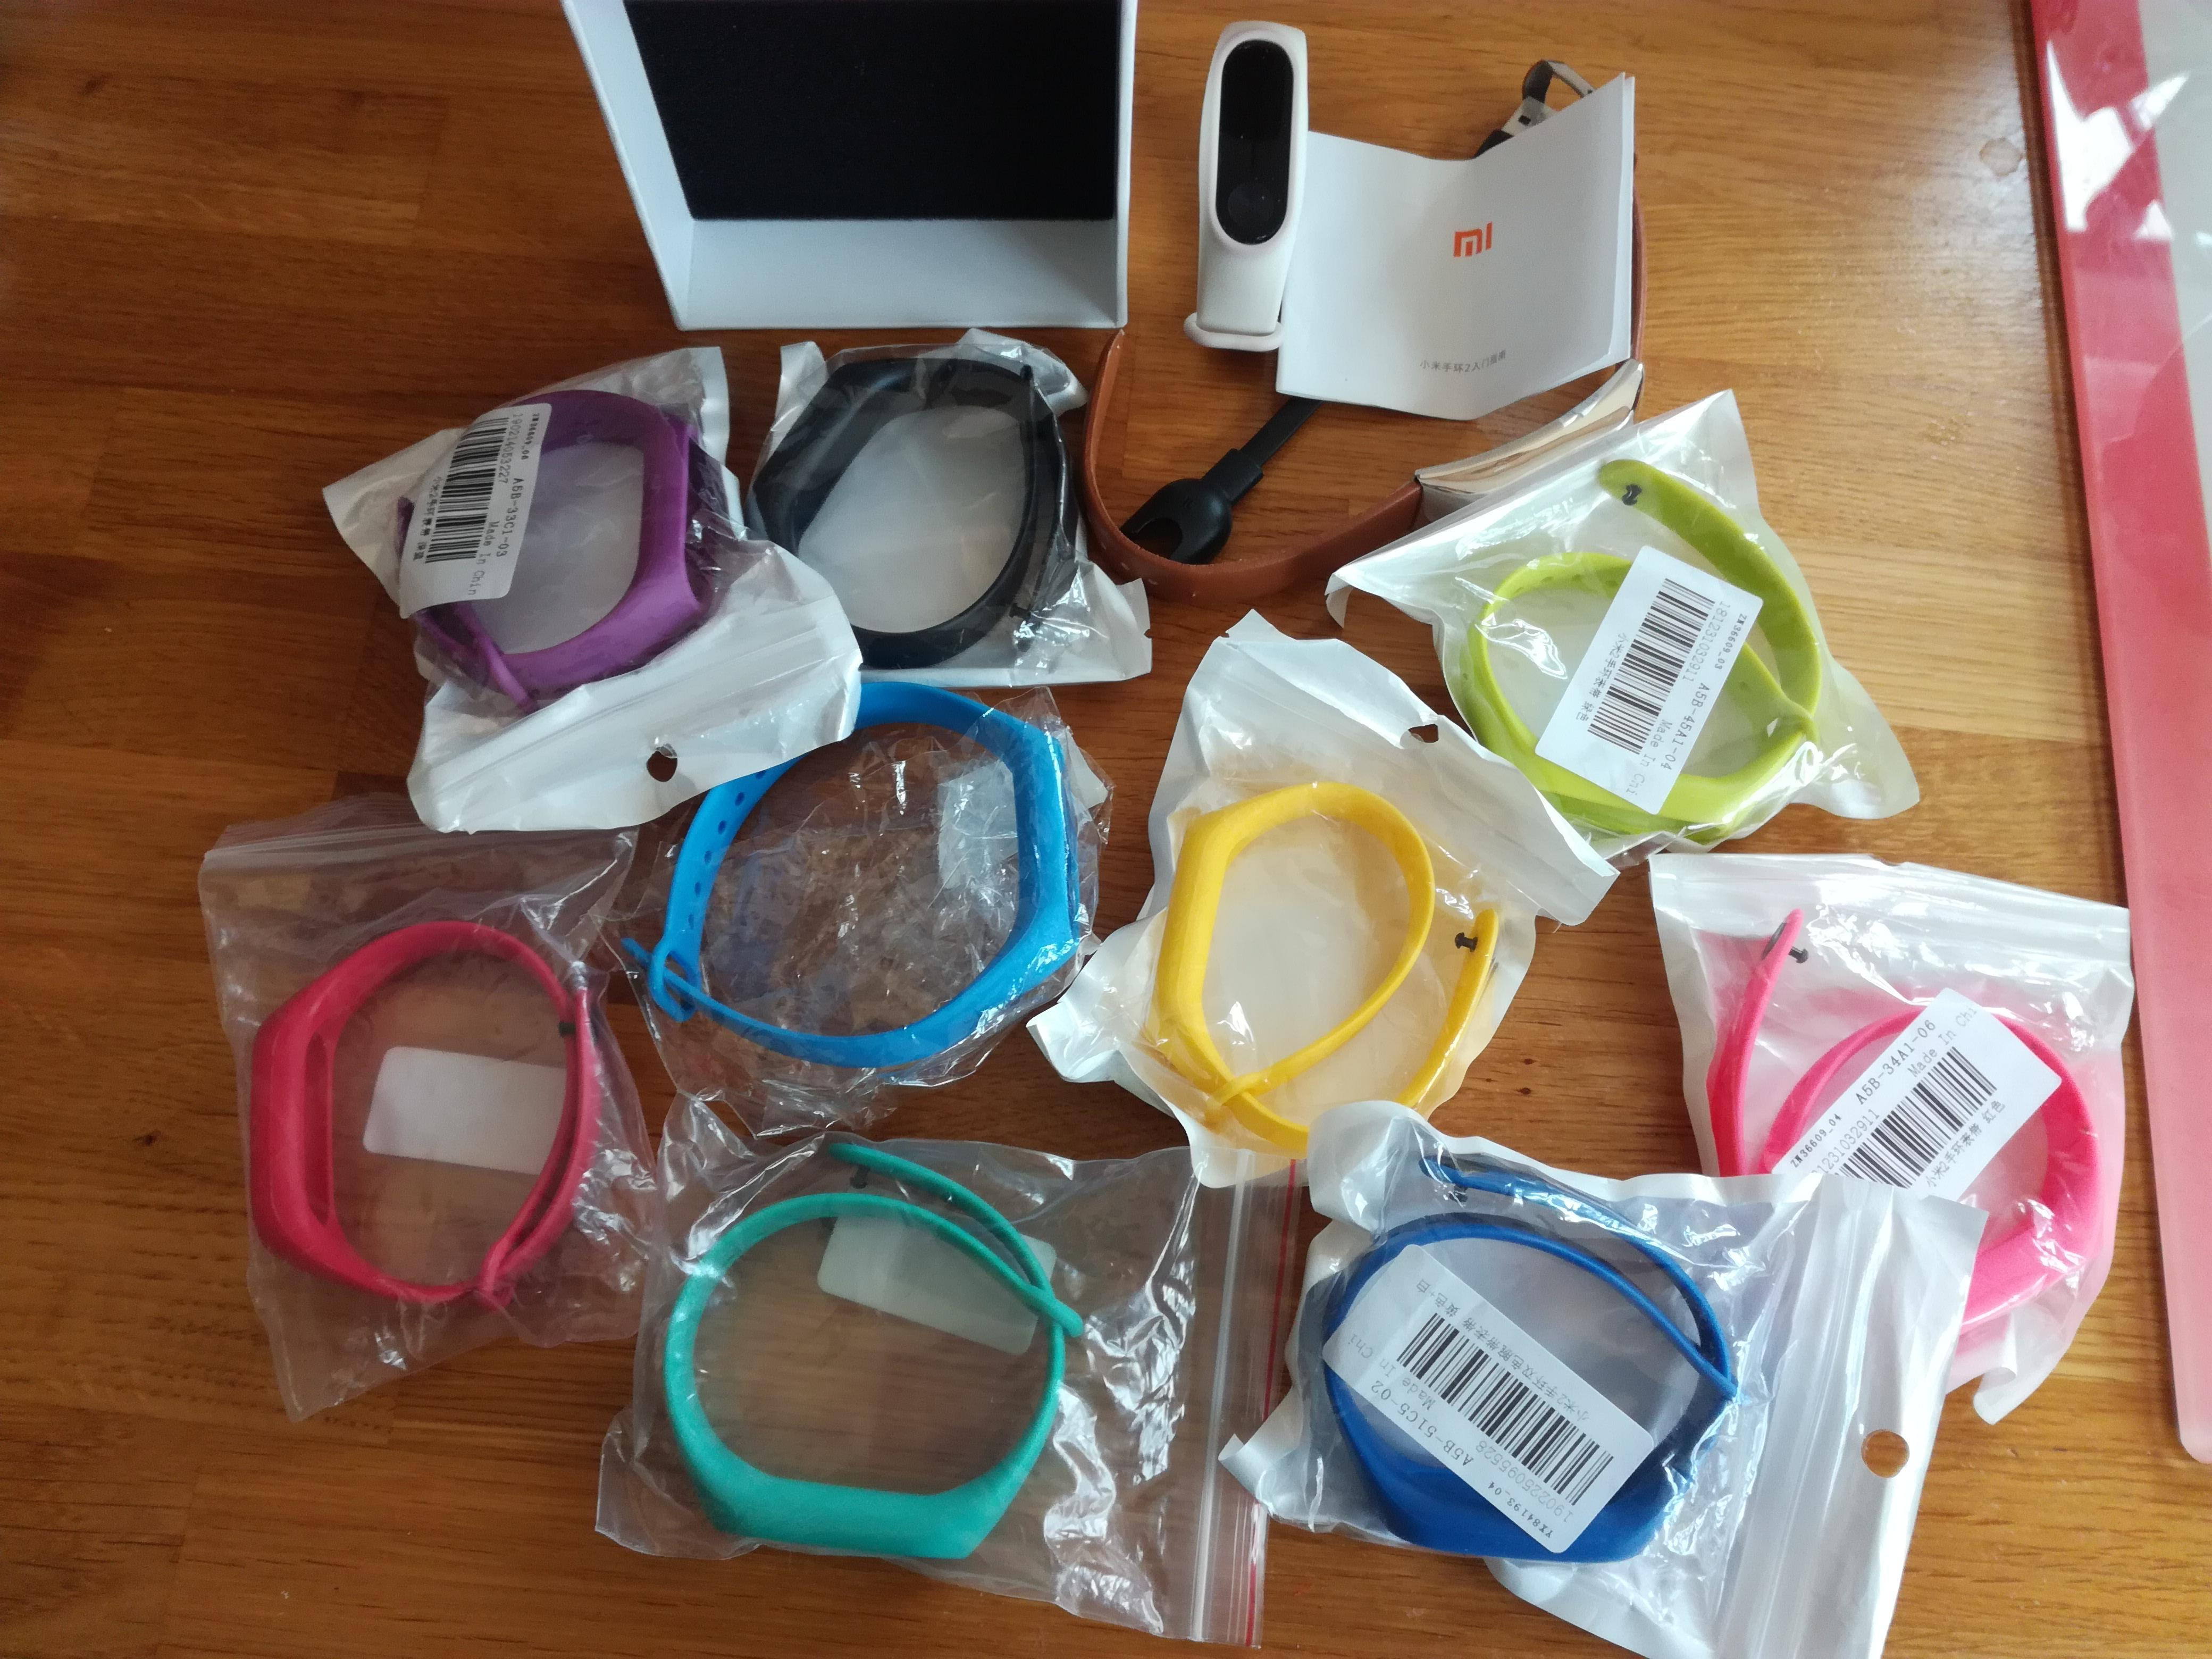 11 assorted straps for Xiaomi Mi fit band 2, plus working